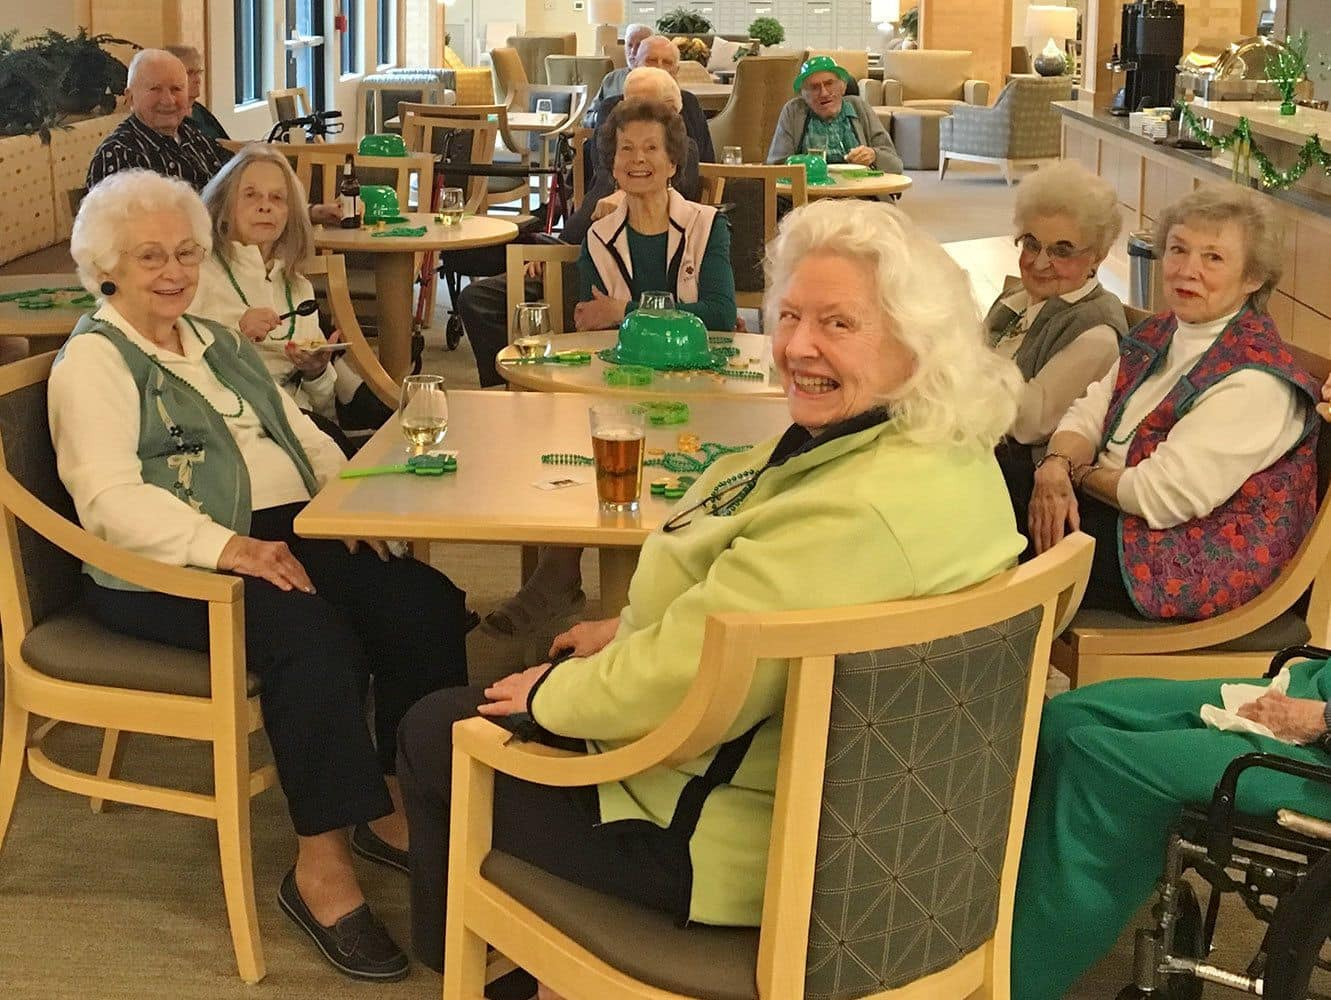 Ladies enjoying St. Patrick's Day together at our senior living community in Auburn, WA